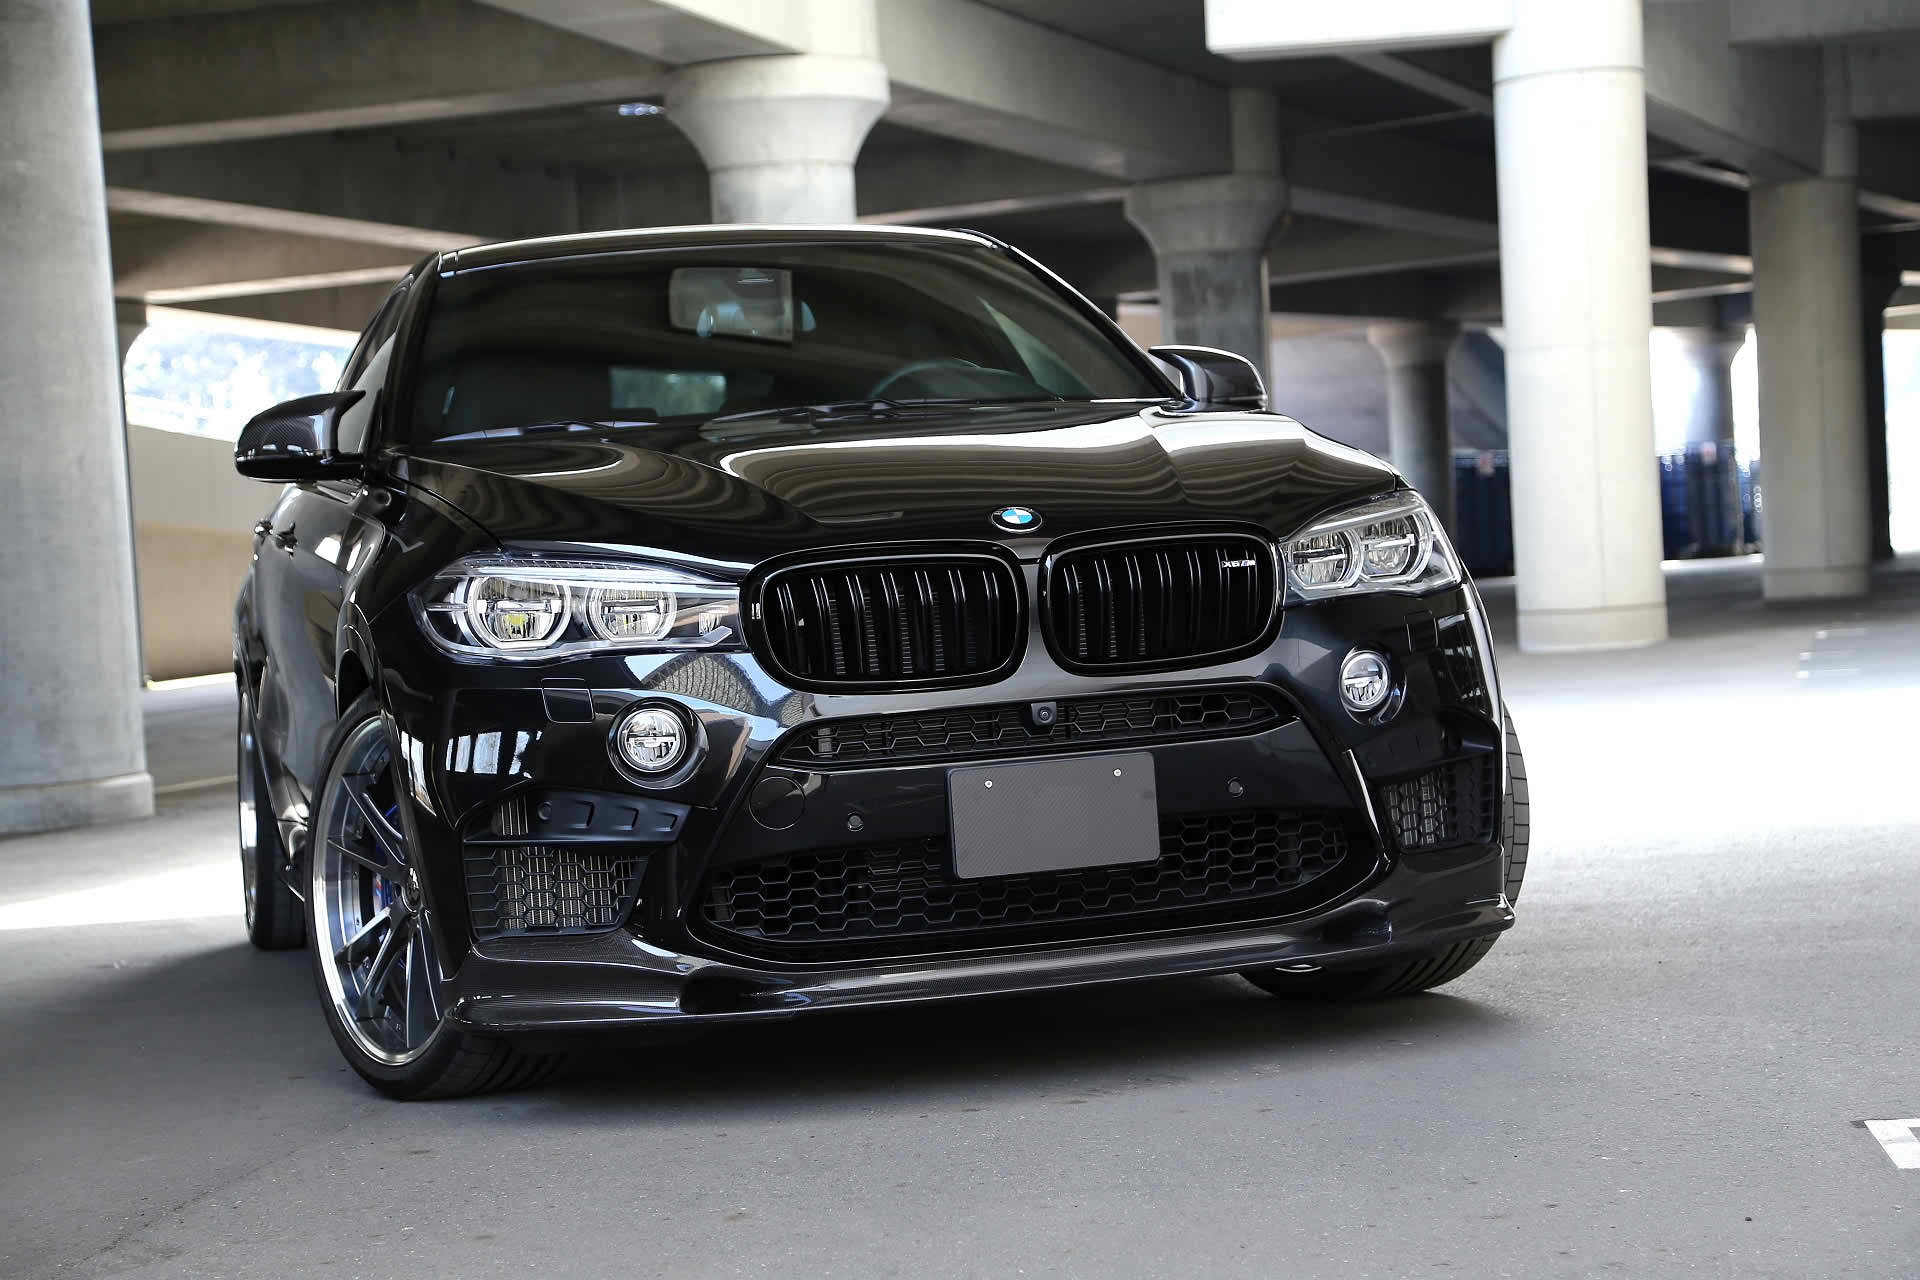 INTRODUCING OUR CARBON FIBER SOLUTIONS FOR BMW X SERIES